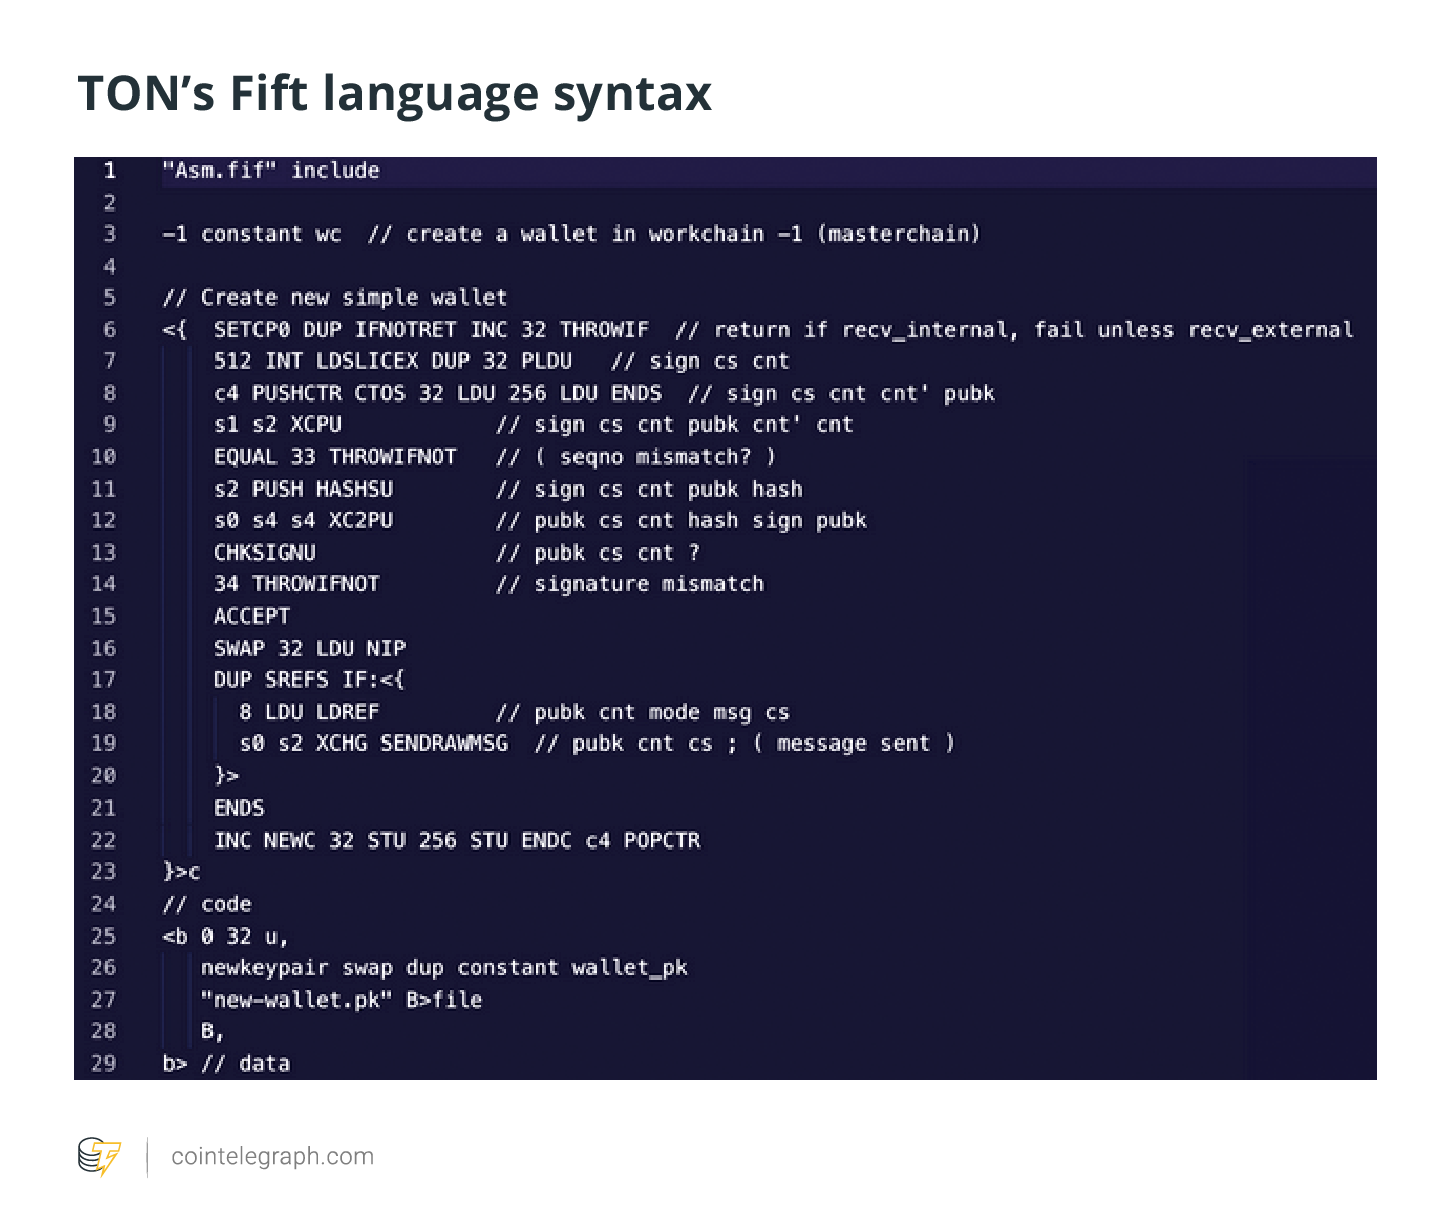 TON's Fift language syntax